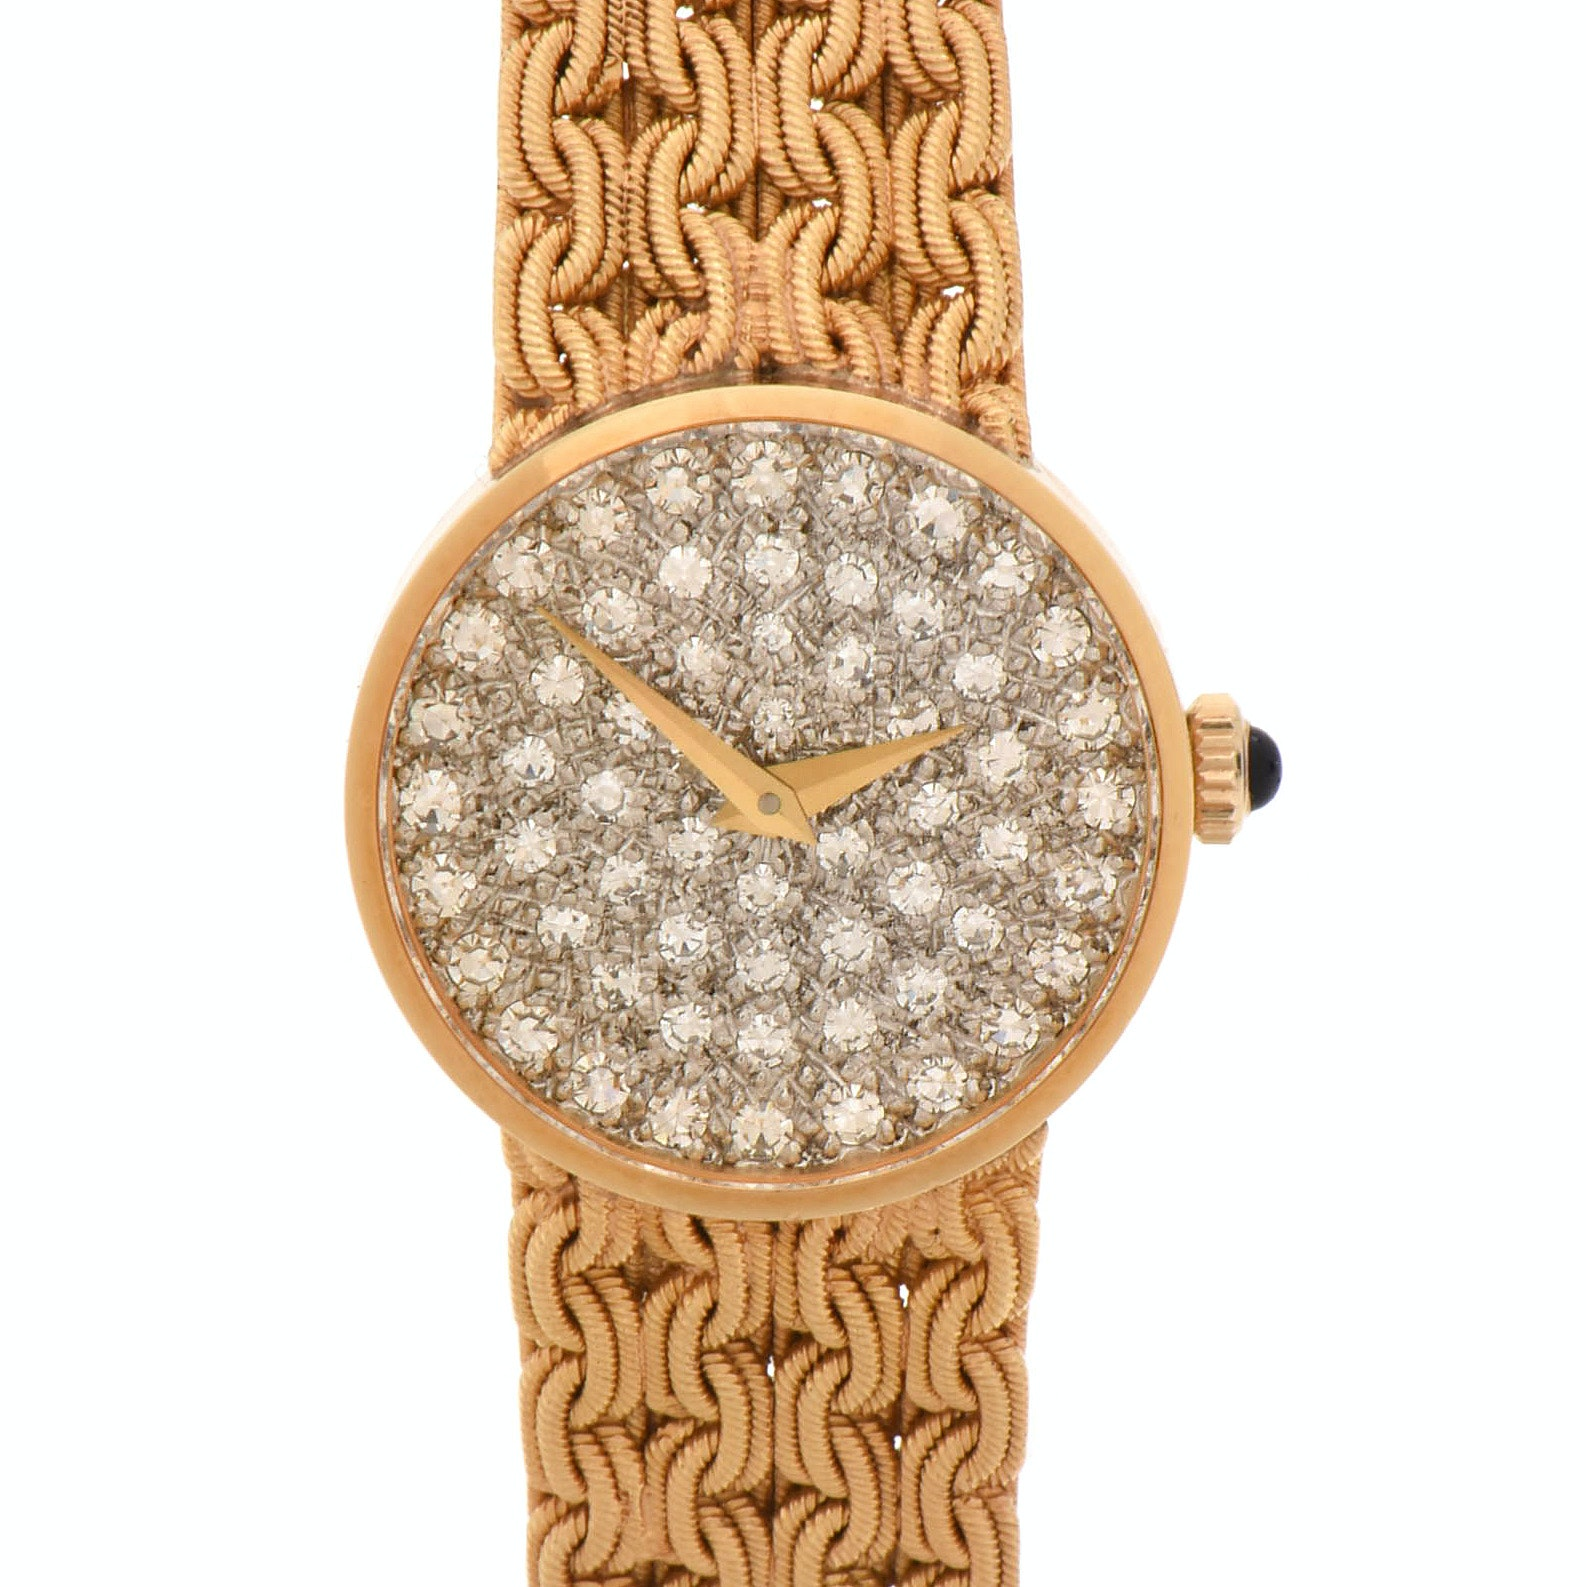 Baume & Mercier Rivera 18K Yellow Gold Diamond Dial Wristwatch, Circa 1970s